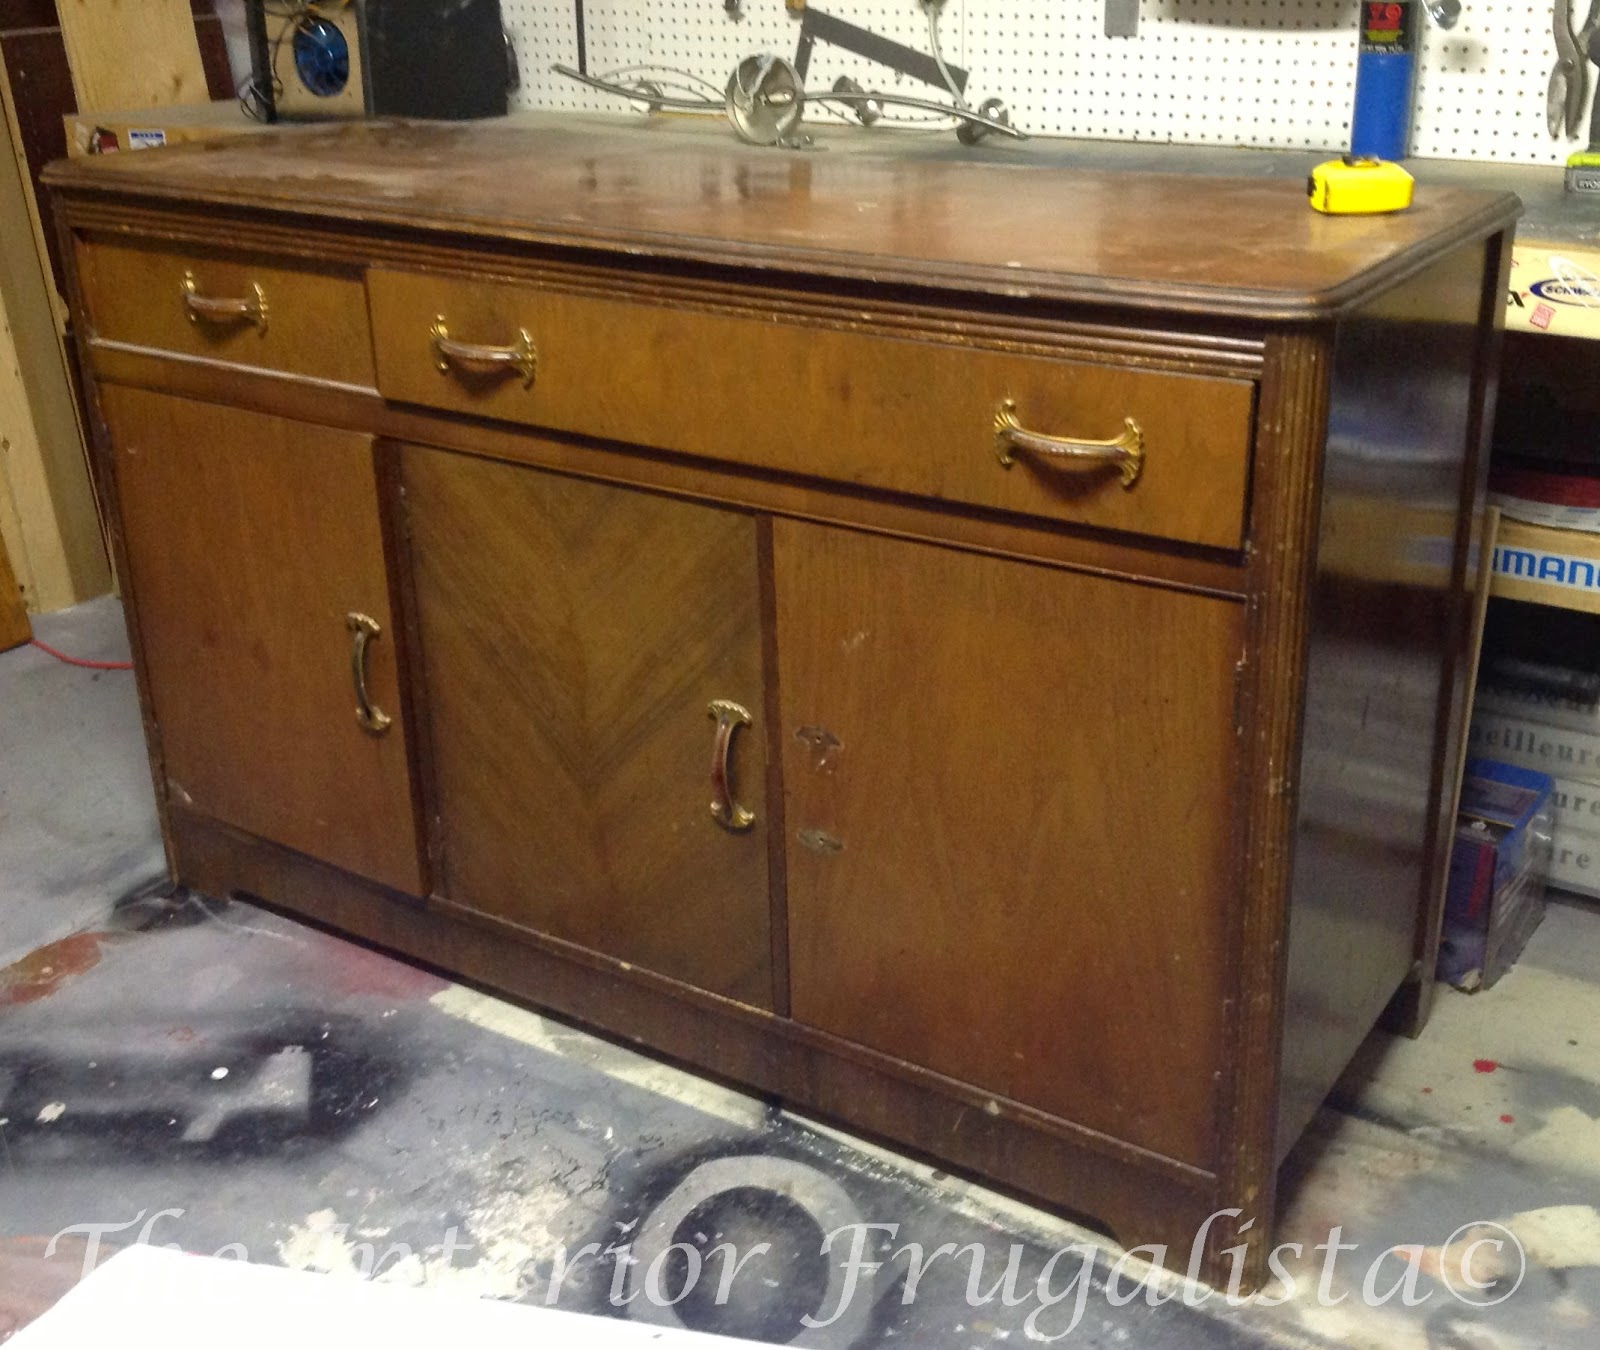 A 70 year old sideboard before the makeover